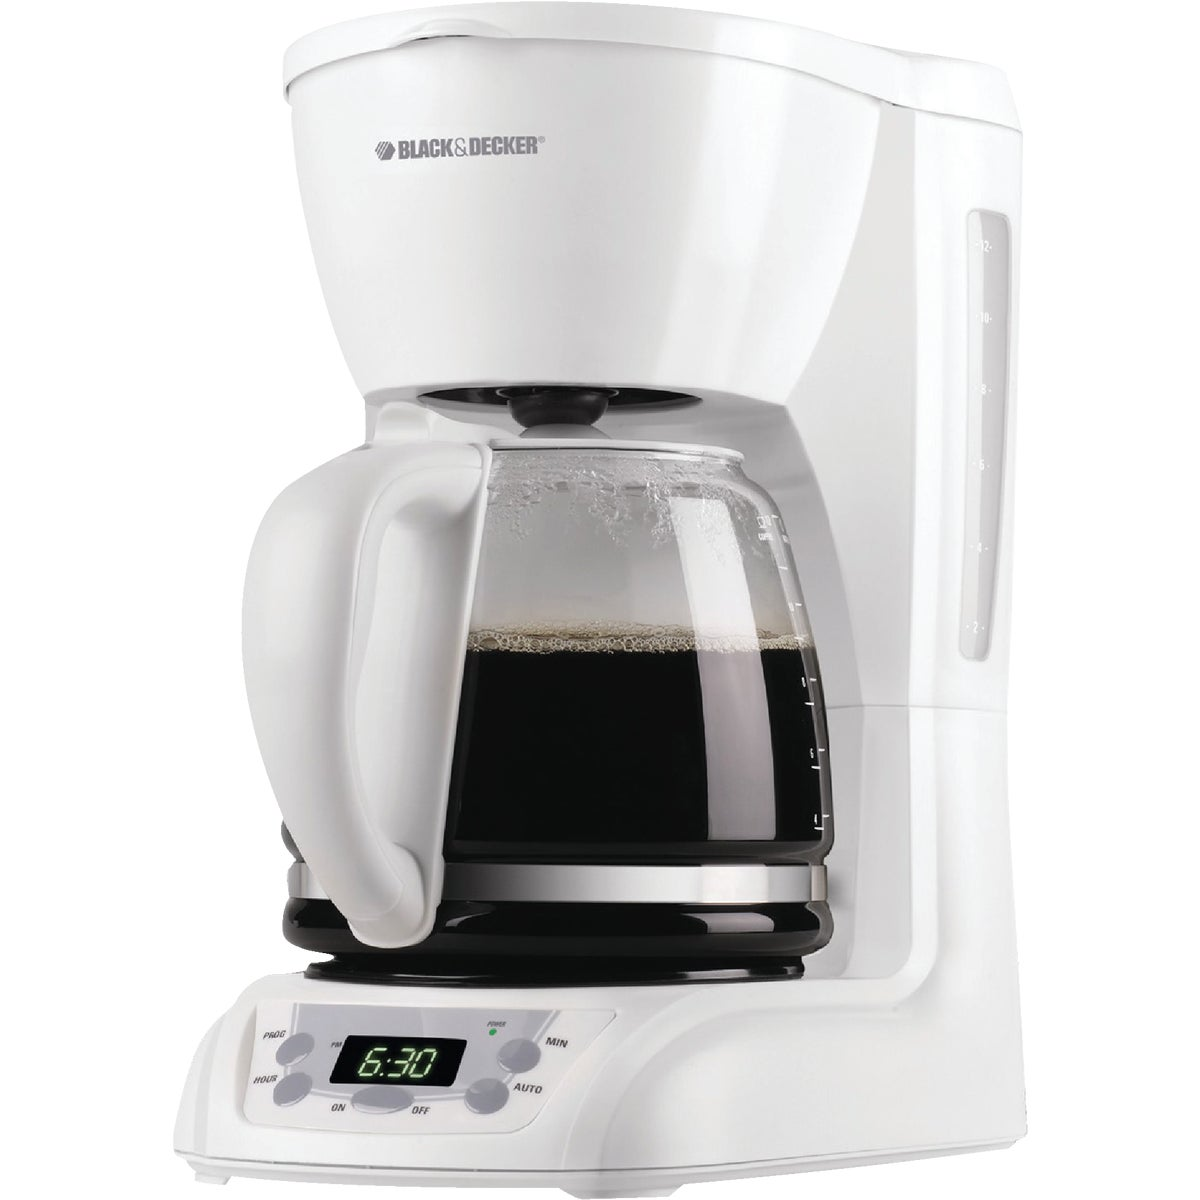 WHT 12-CUP COFFEE MAKER - DLX1050W by Applia      Spectrum